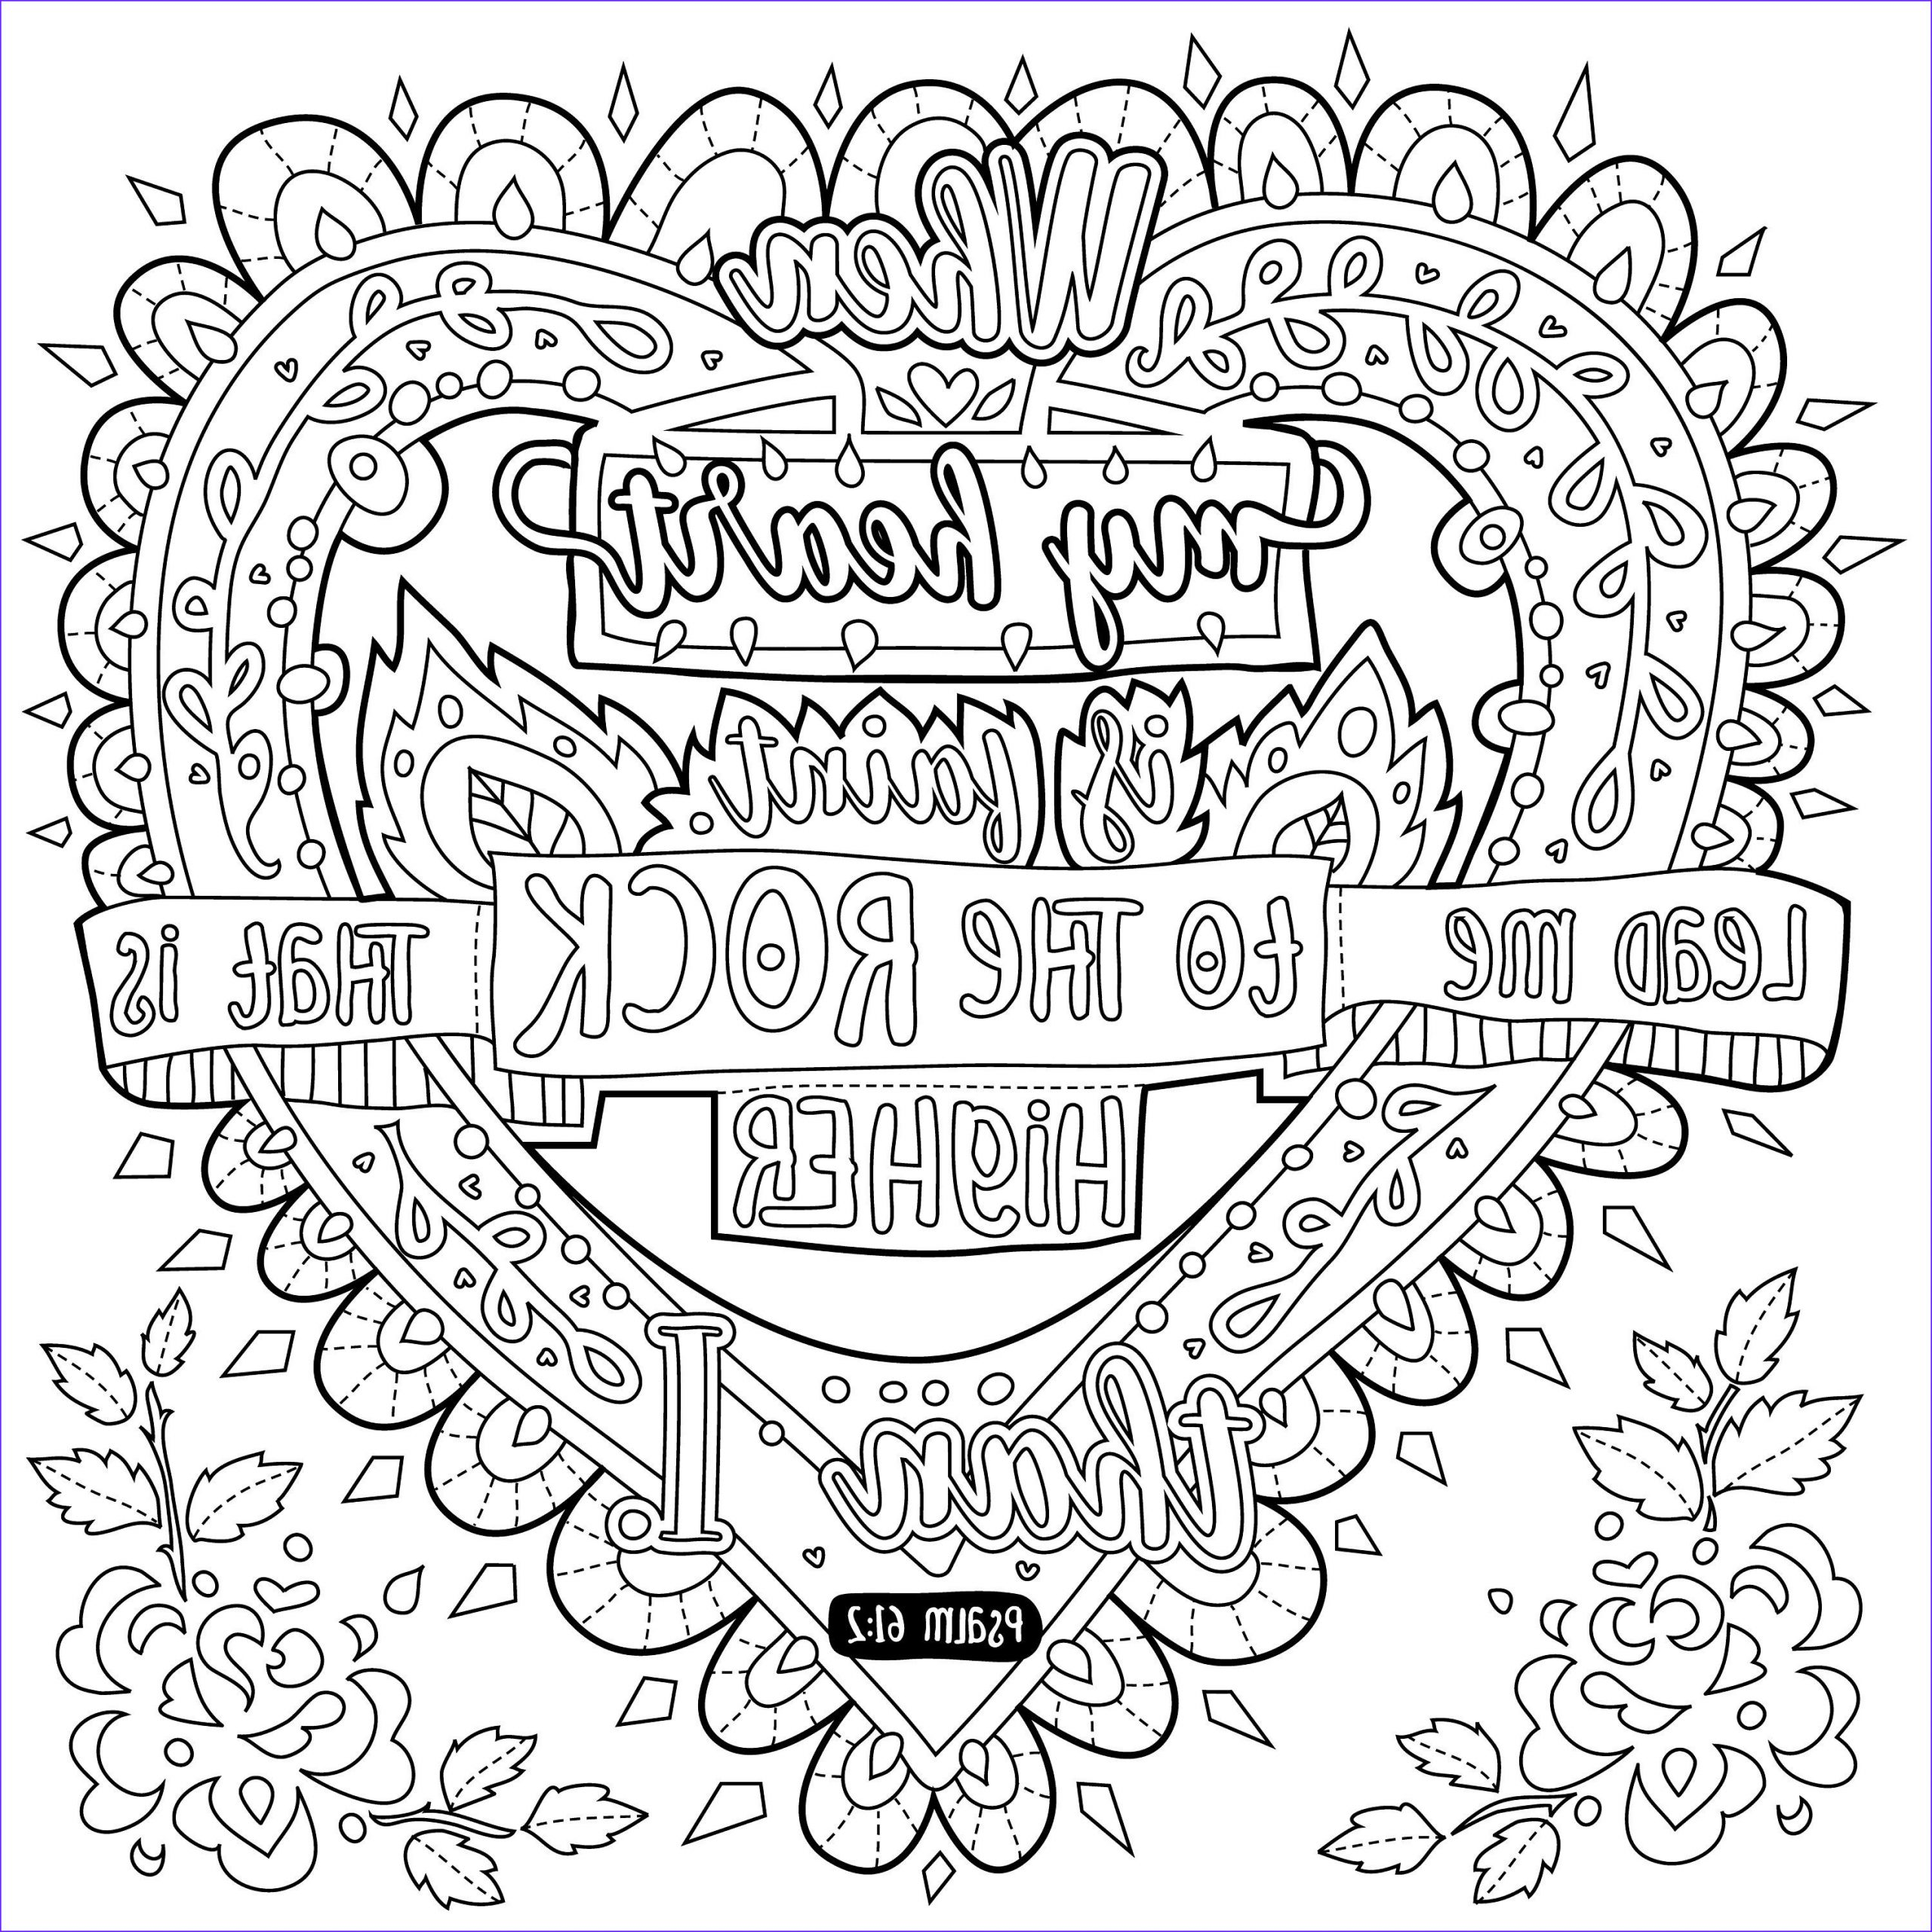 Free Quote Coloring Page New Image Pin On Color Me Quotes